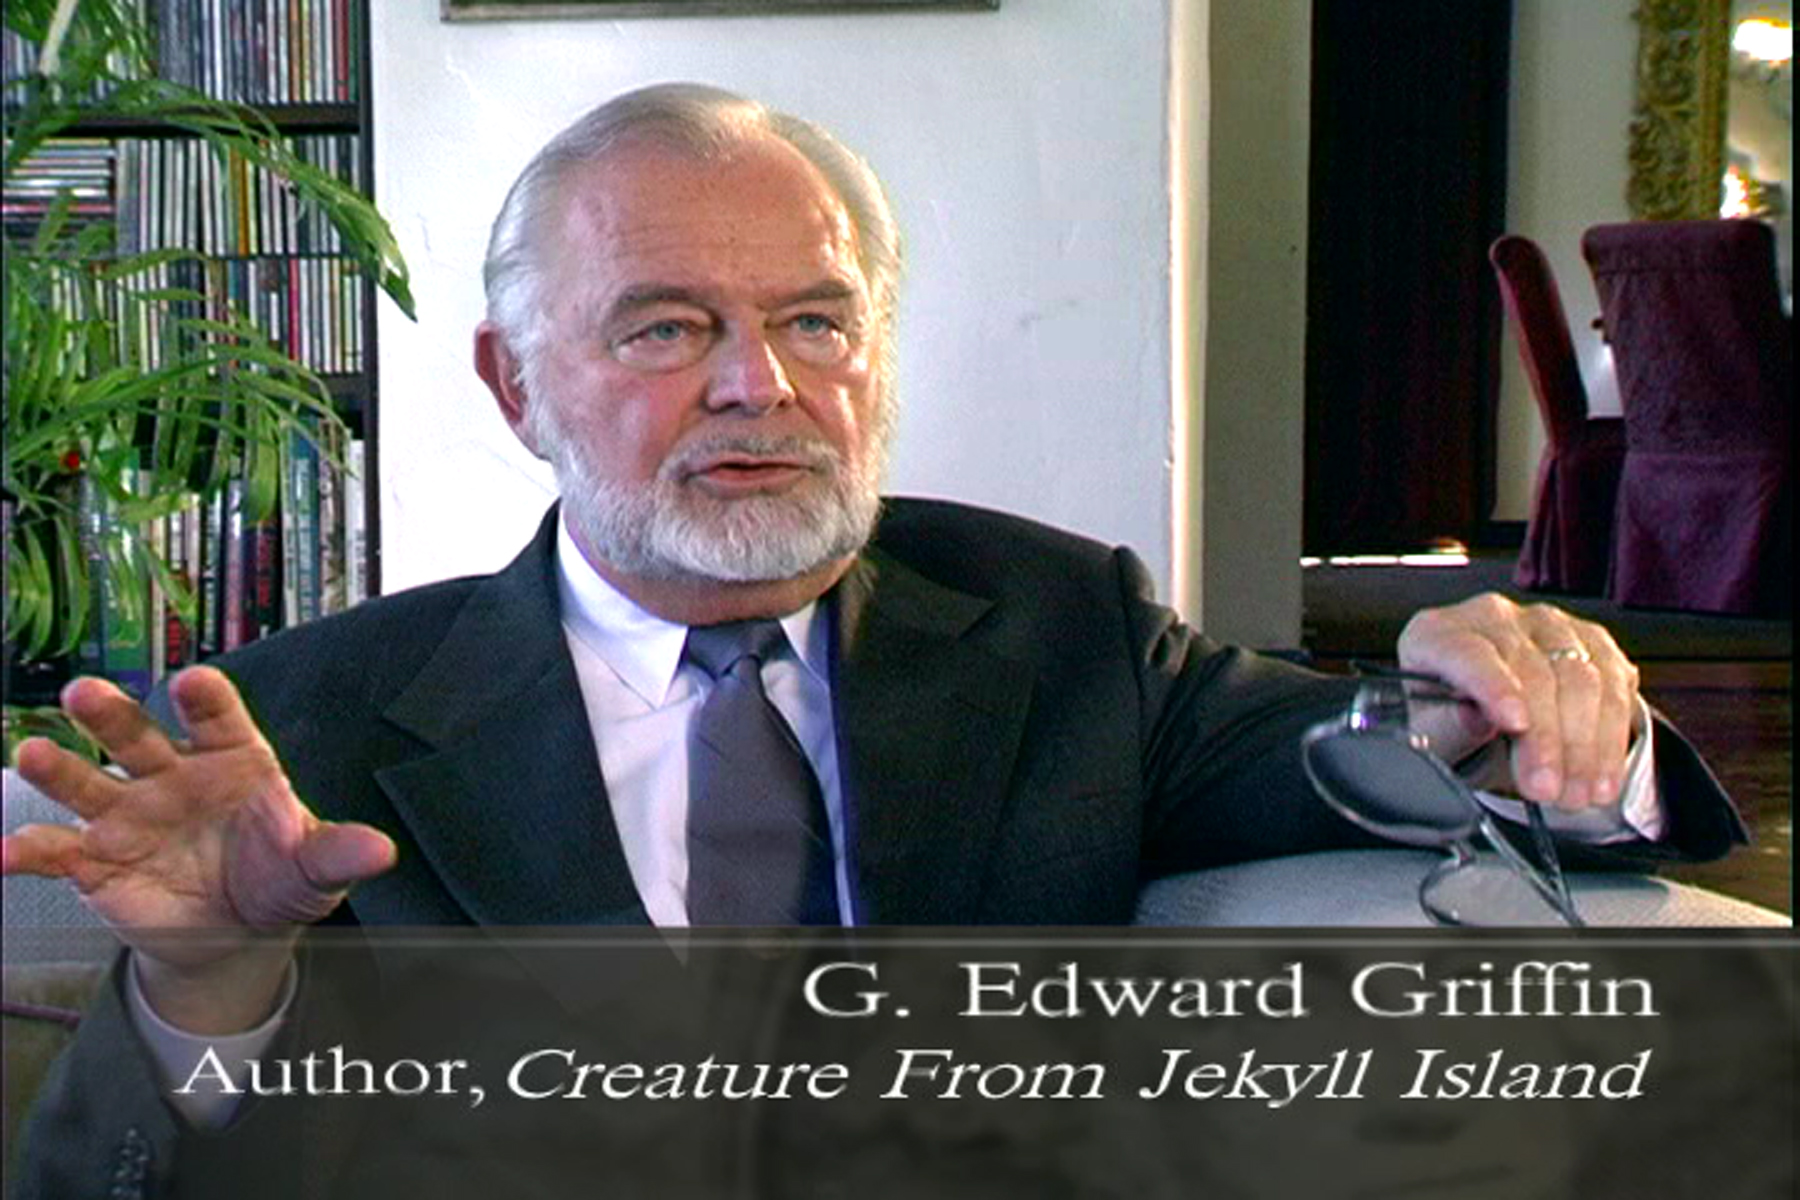 Episode 262: Taking the 'Red Pill' w/ G. Edward Griffin